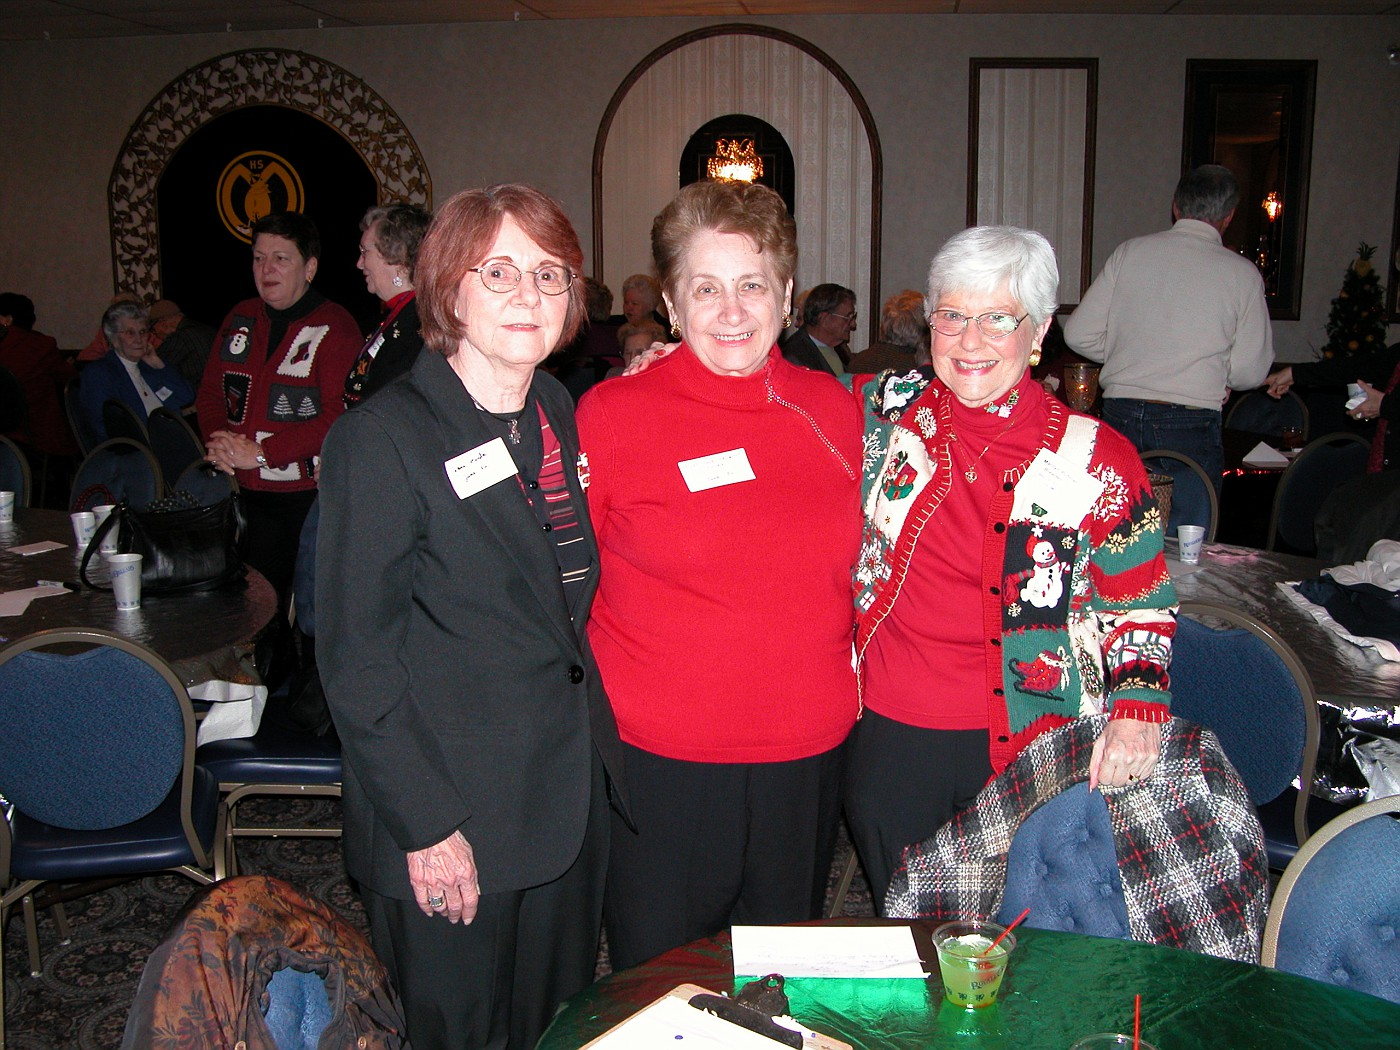 Jane Ponder, Mary Jane Caragher, Marilyn Breeden